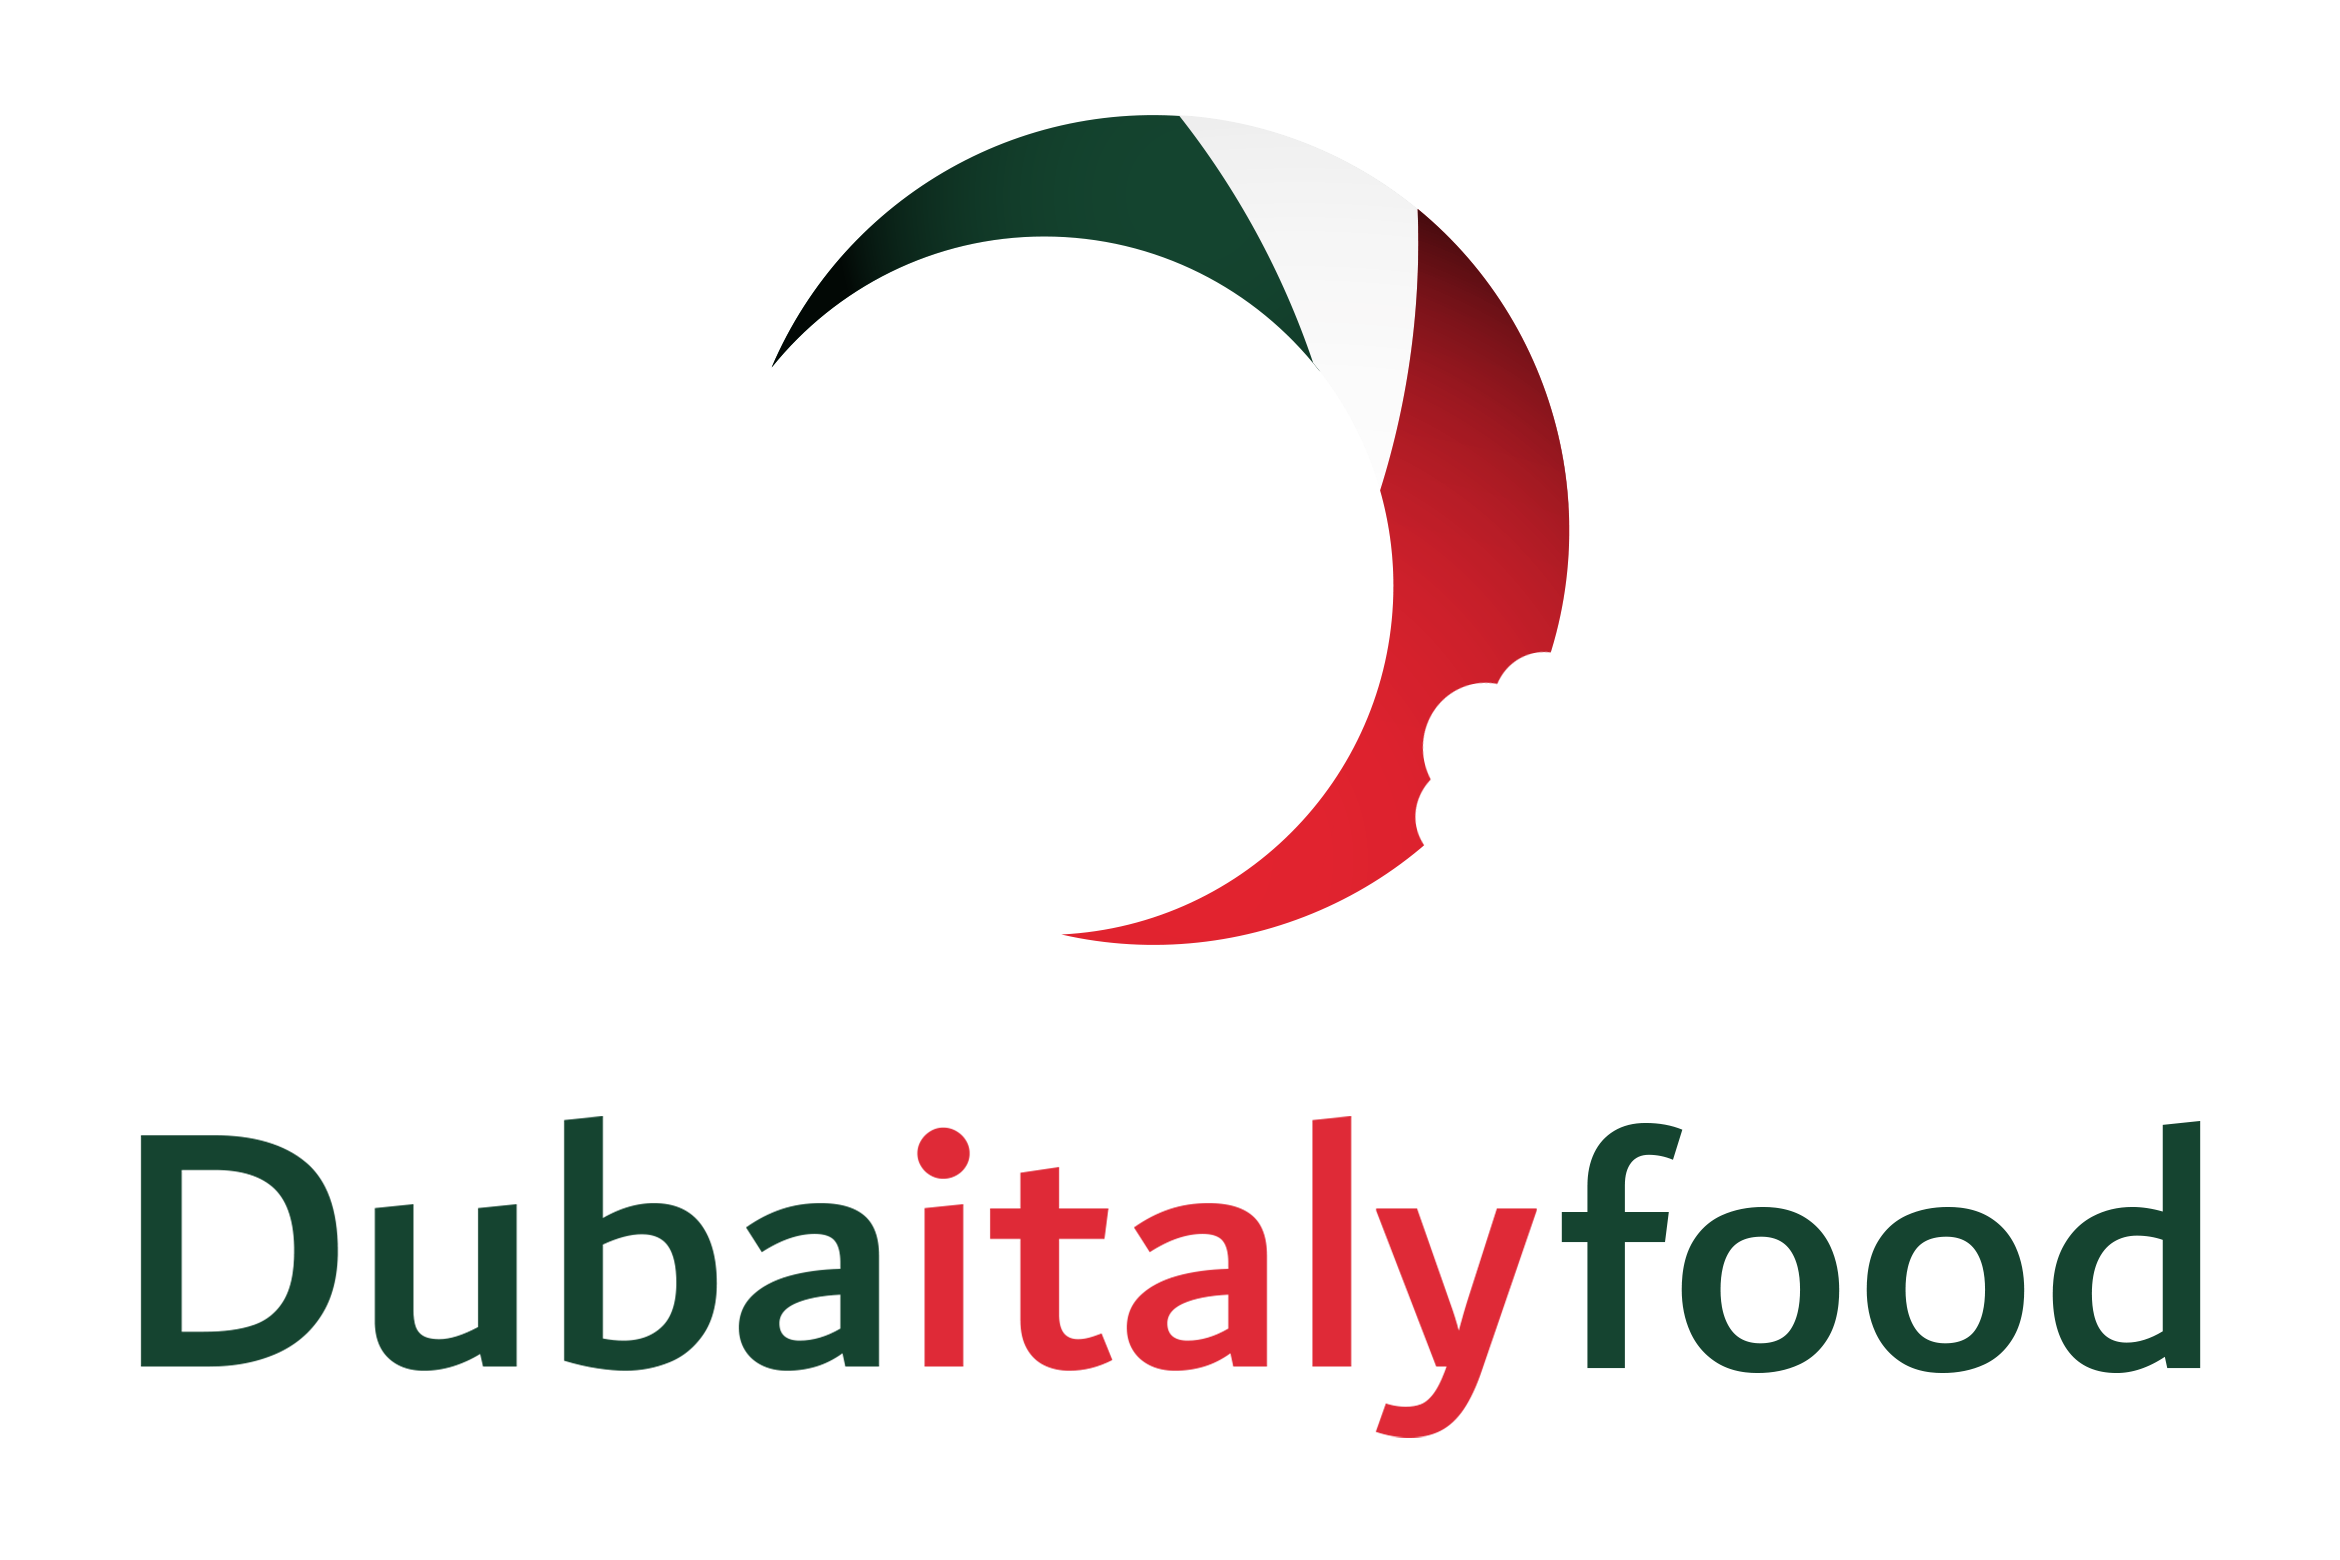 logo Dubaitaly food